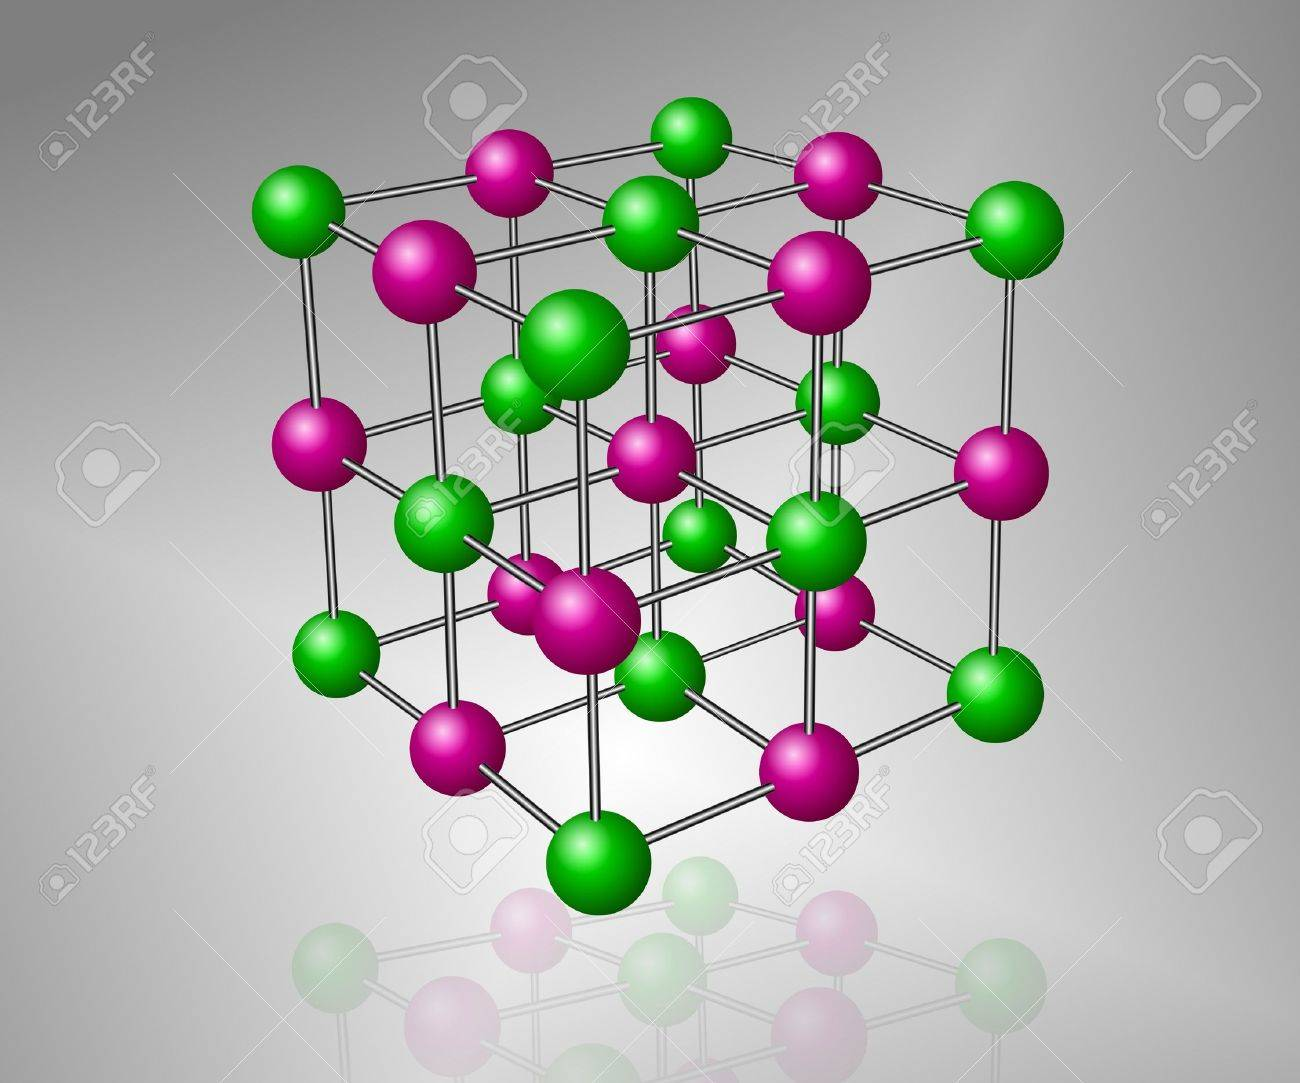 Crystalline Structure Model Of Sodium Chloride Molecule